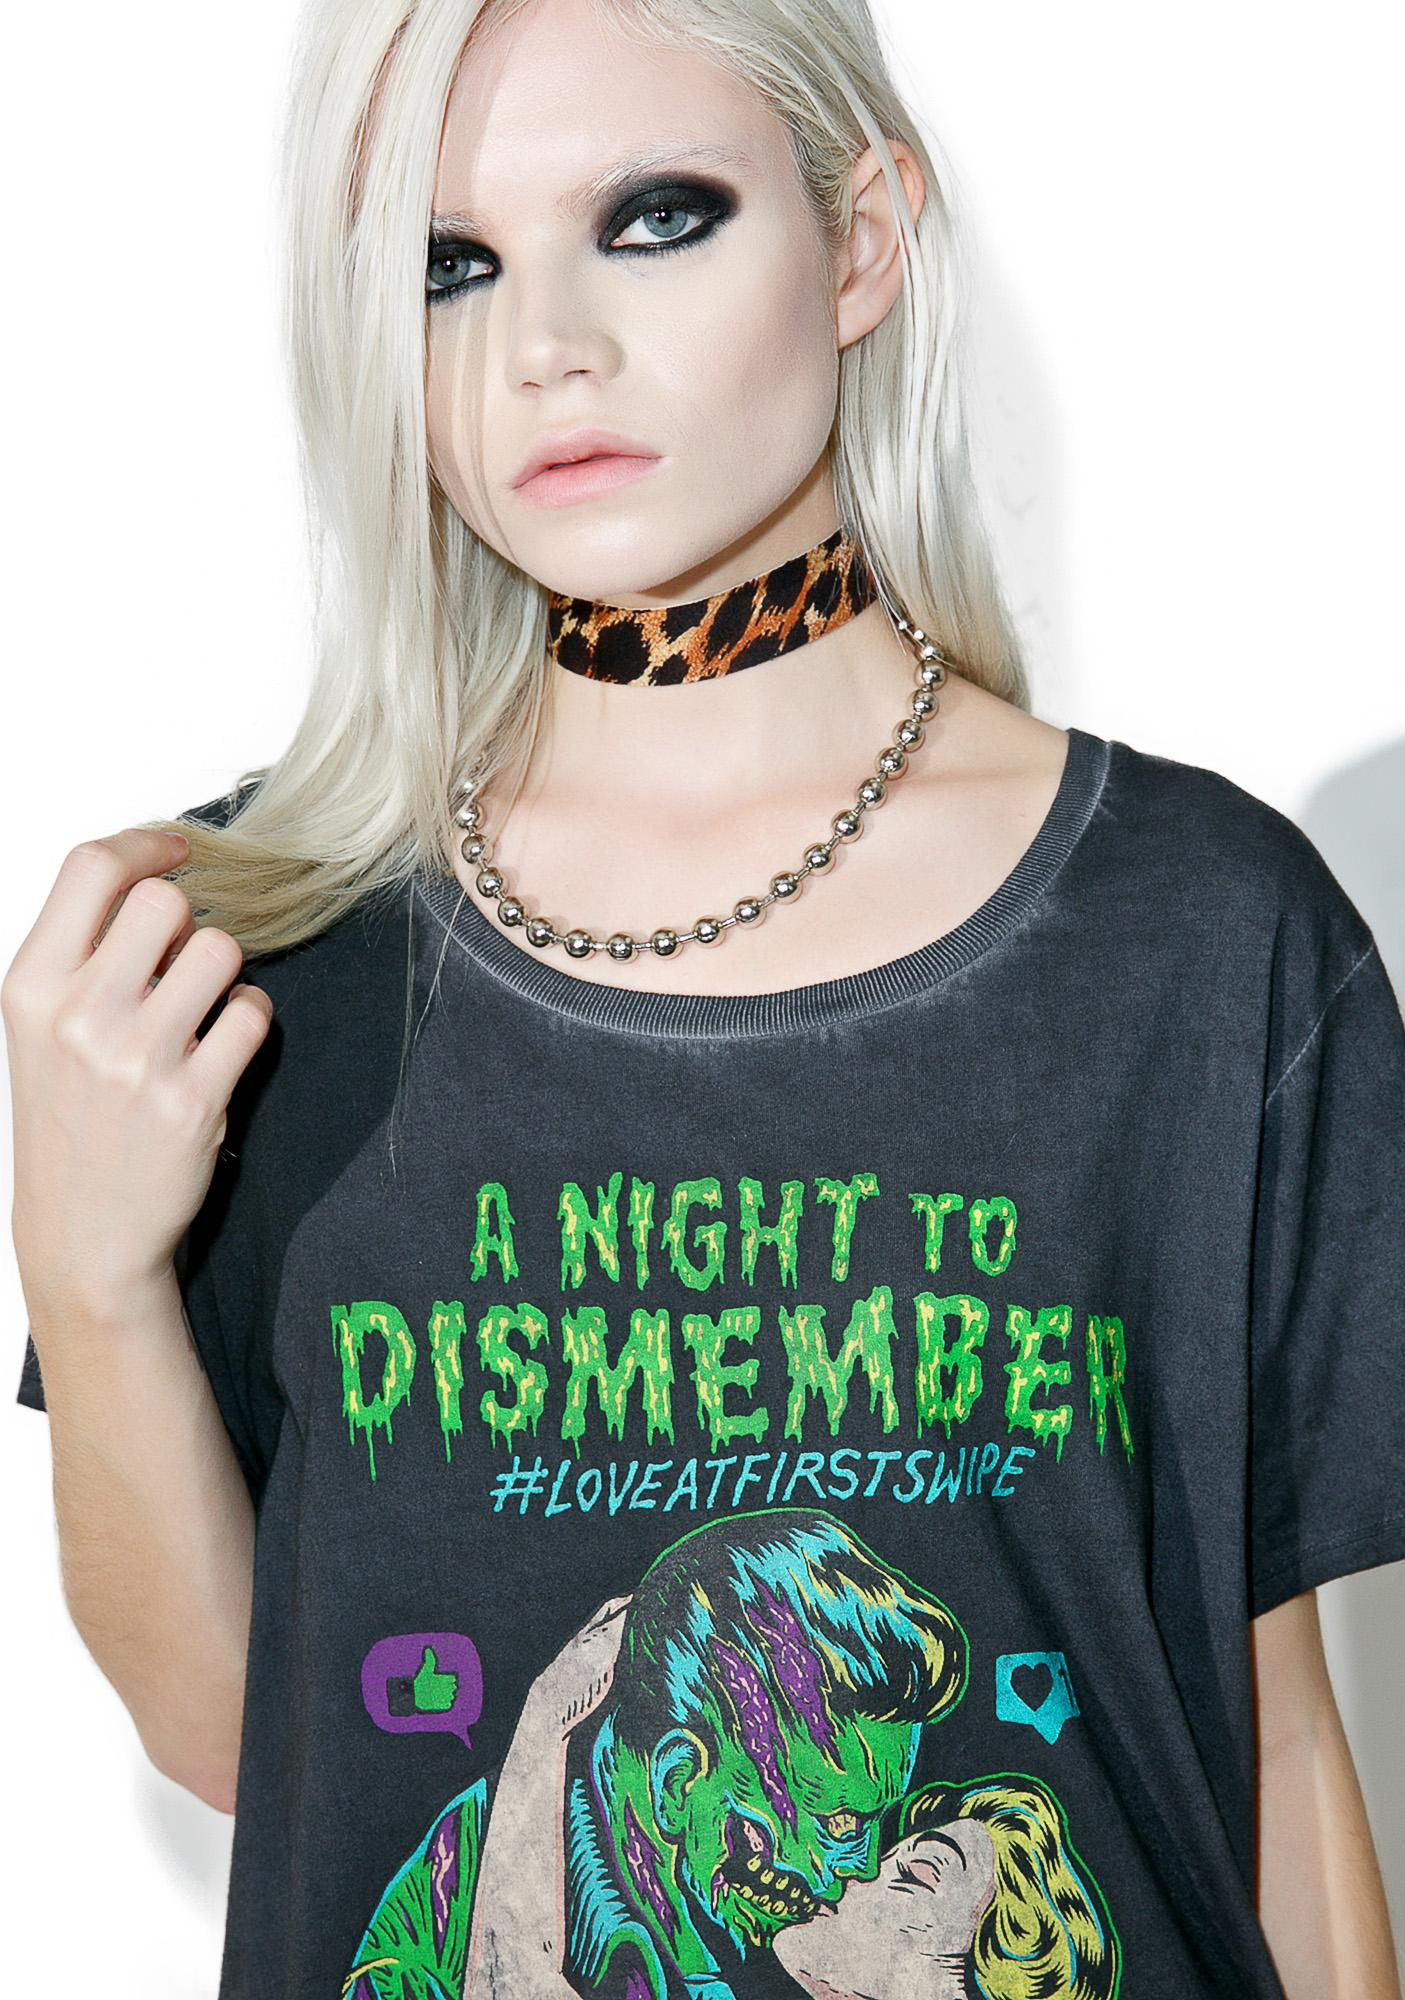 So Catty Choker